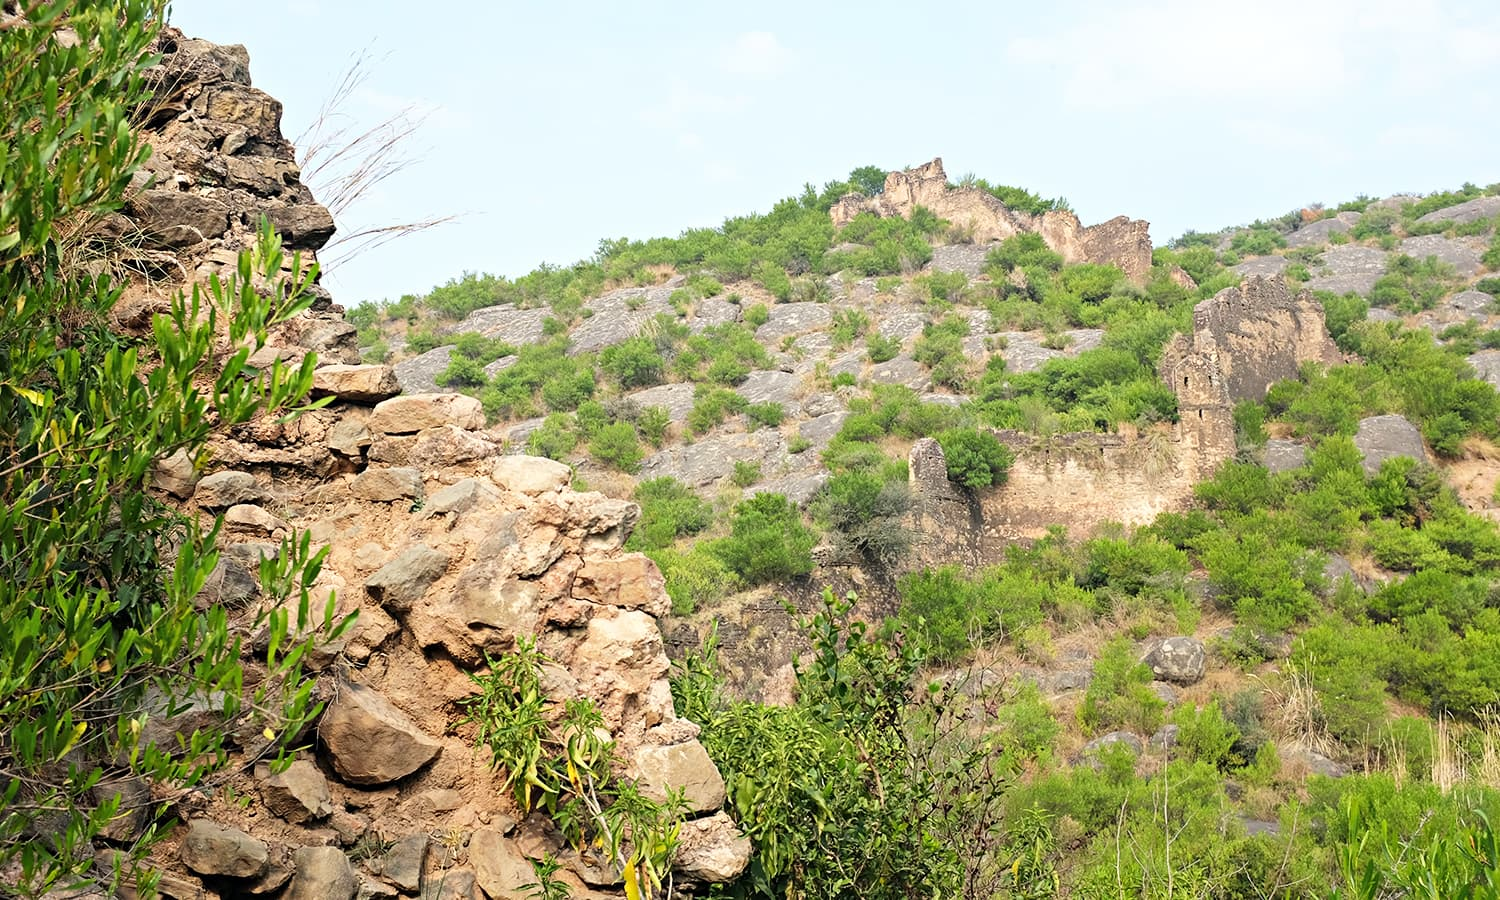 I see first signs of the fortified wall which is supplemented with ridges at many places.